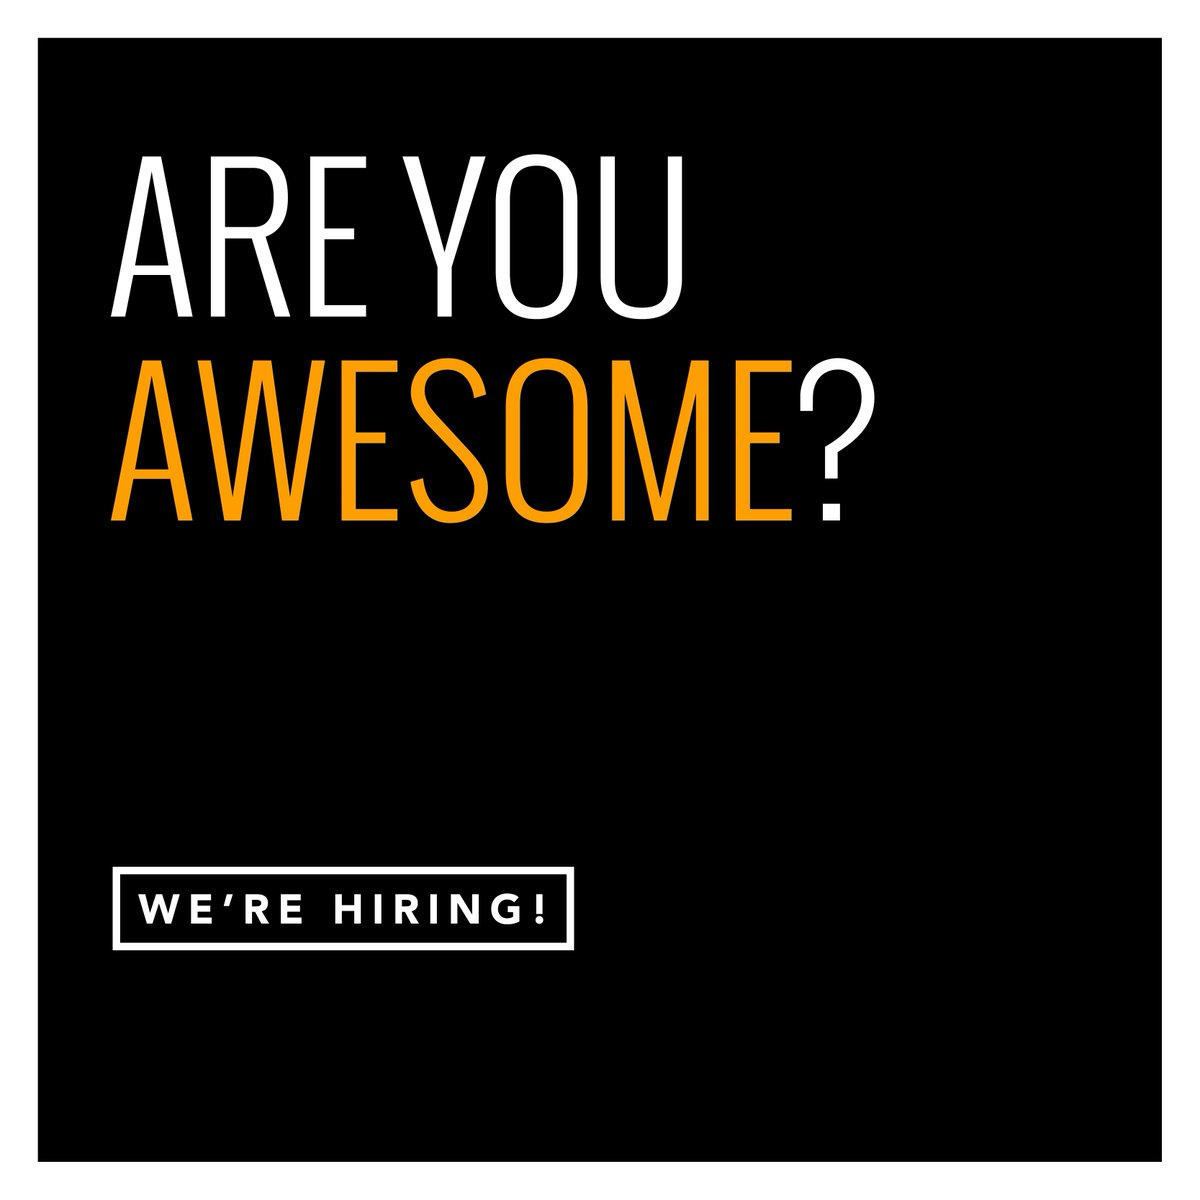 test Twitter Media - Want to change lives and create opportunities? WiNGS is hiring! Check out our job openings here: https://t.co/gWvGFFmKML https://t.co/iKDkqiLrh9